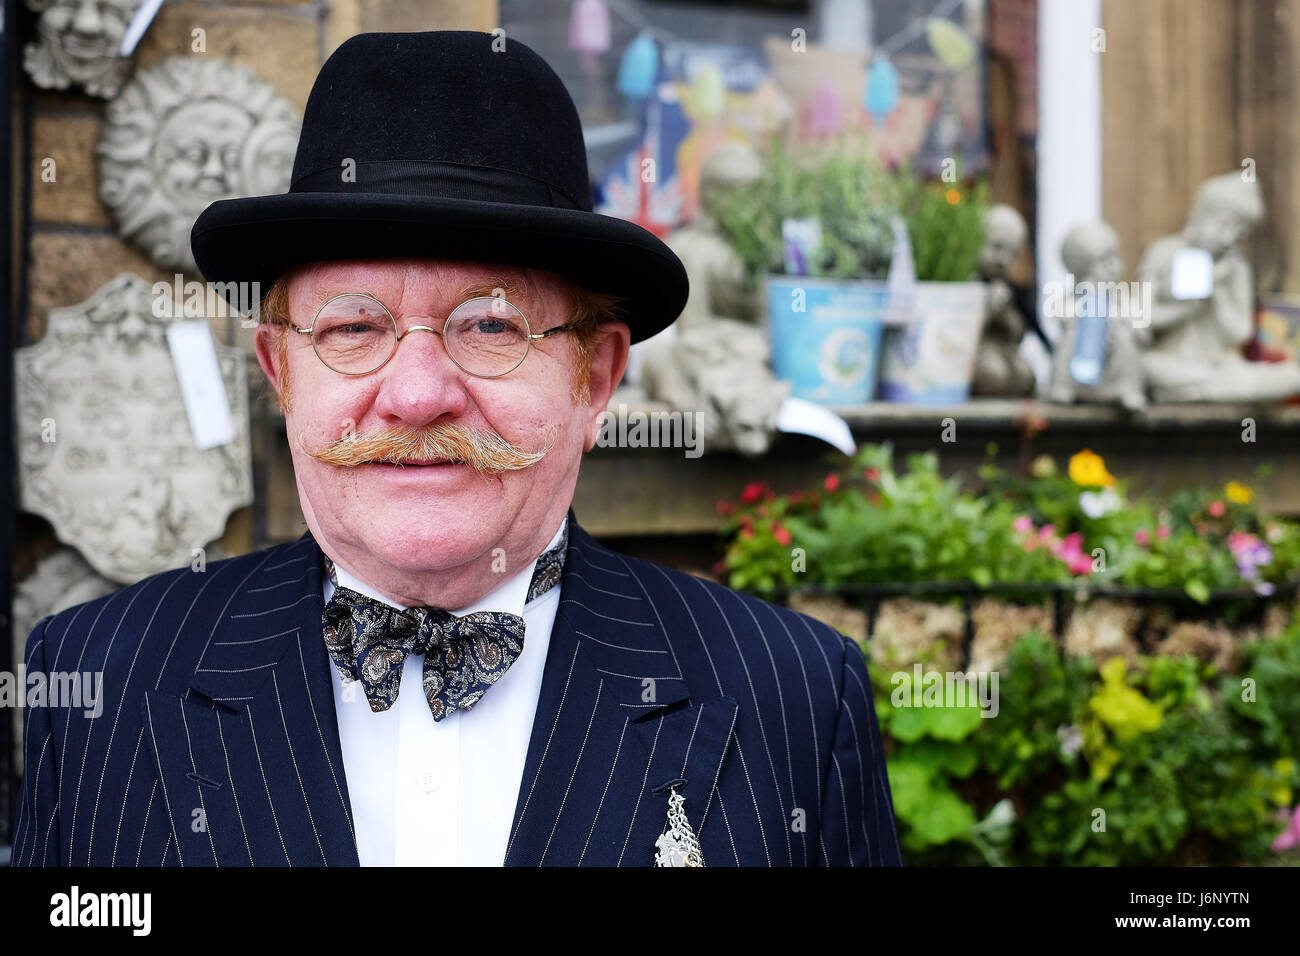 A middle aged man in traditional clothing with a moustache and round glasses - Stock Image